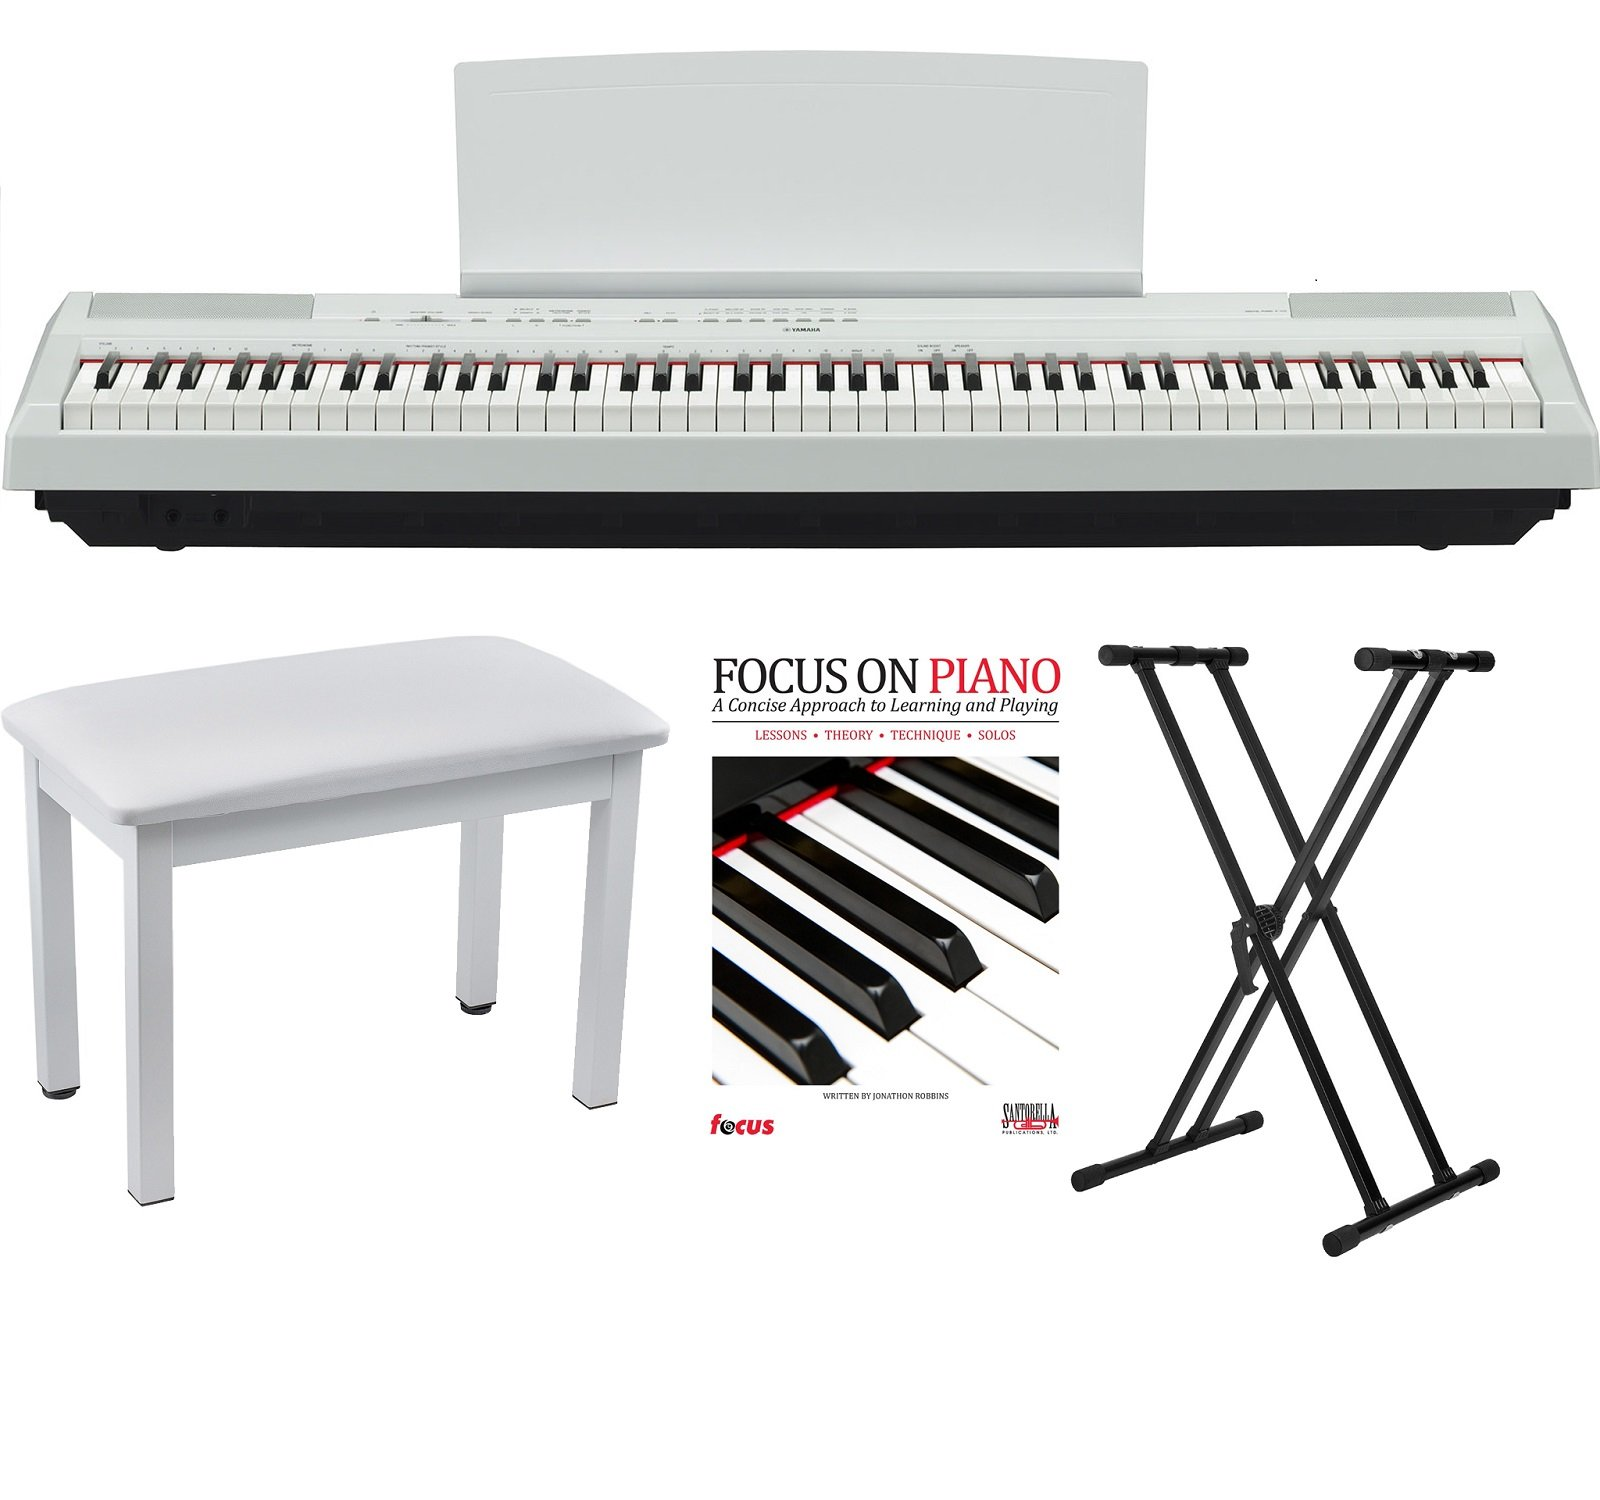 Yamaha P115 88 Weighted Keys White Digital Piano w/ Knox Piano Bench, Stand & Music Book